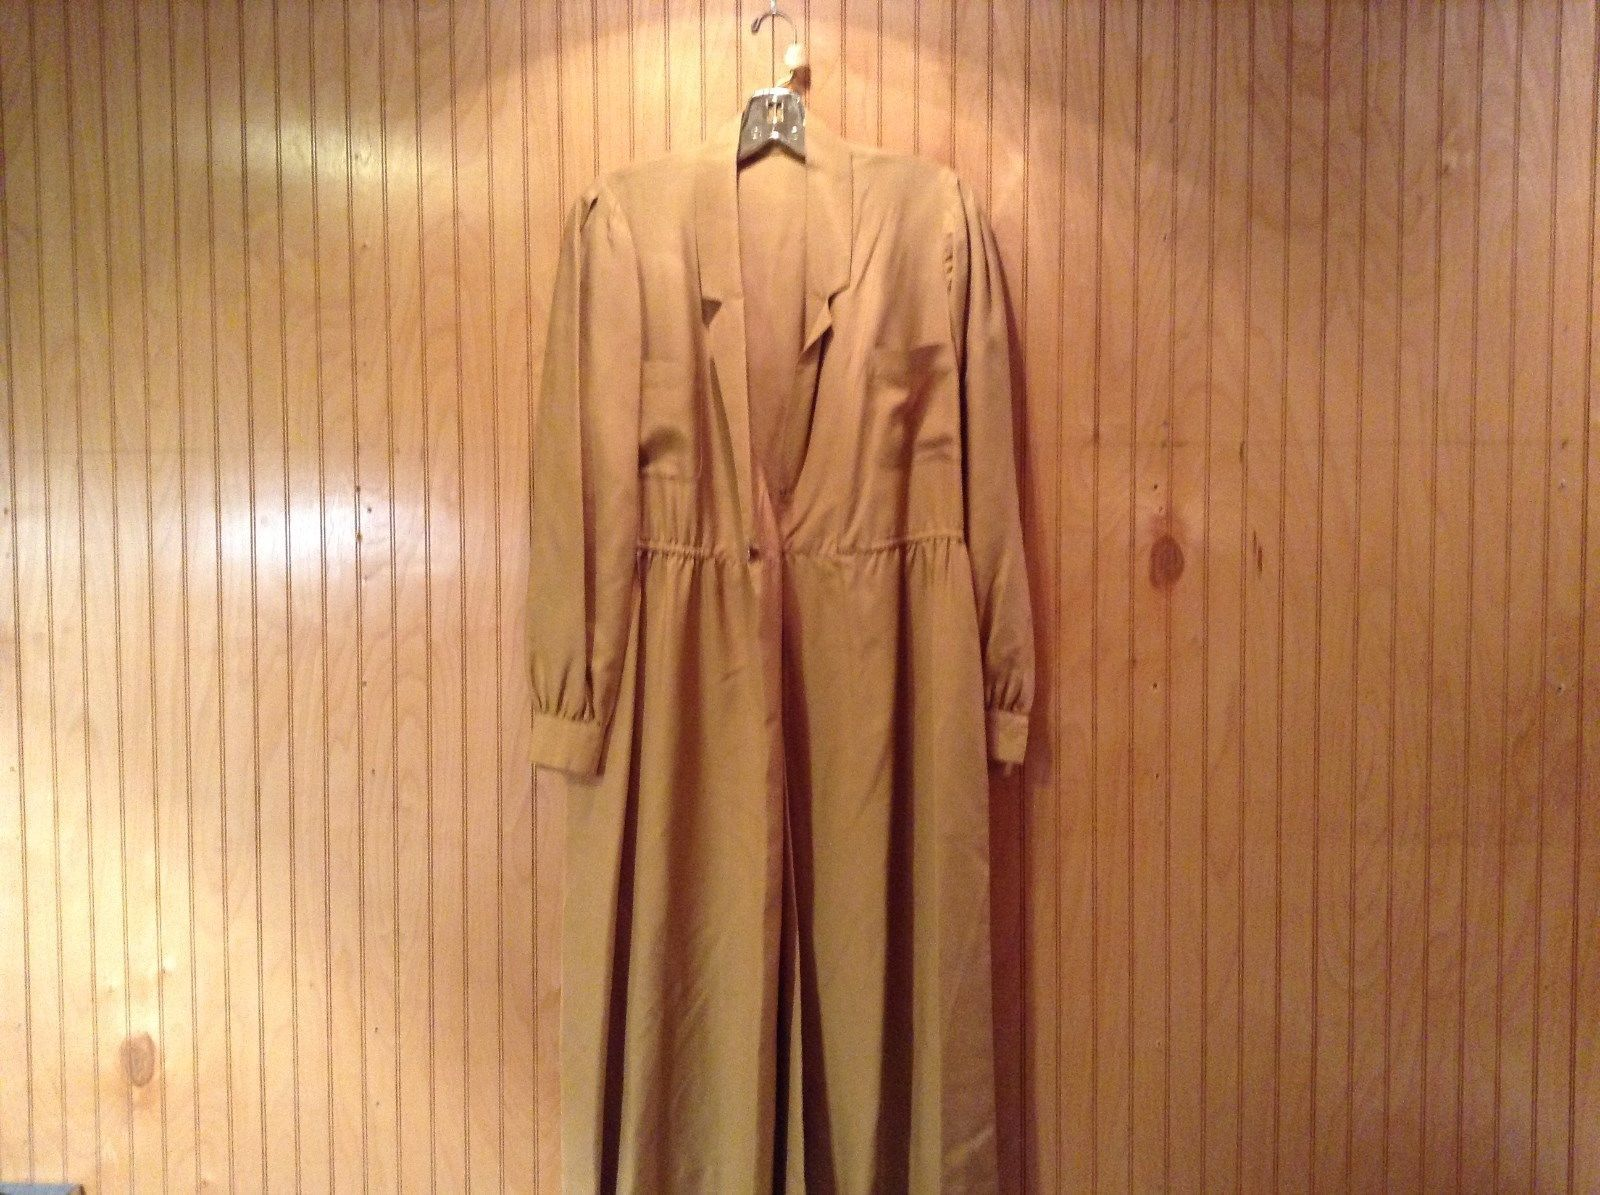 Long Brown Long Sleeved Dress One Button One Clasp Two Pockets Ties at Waist